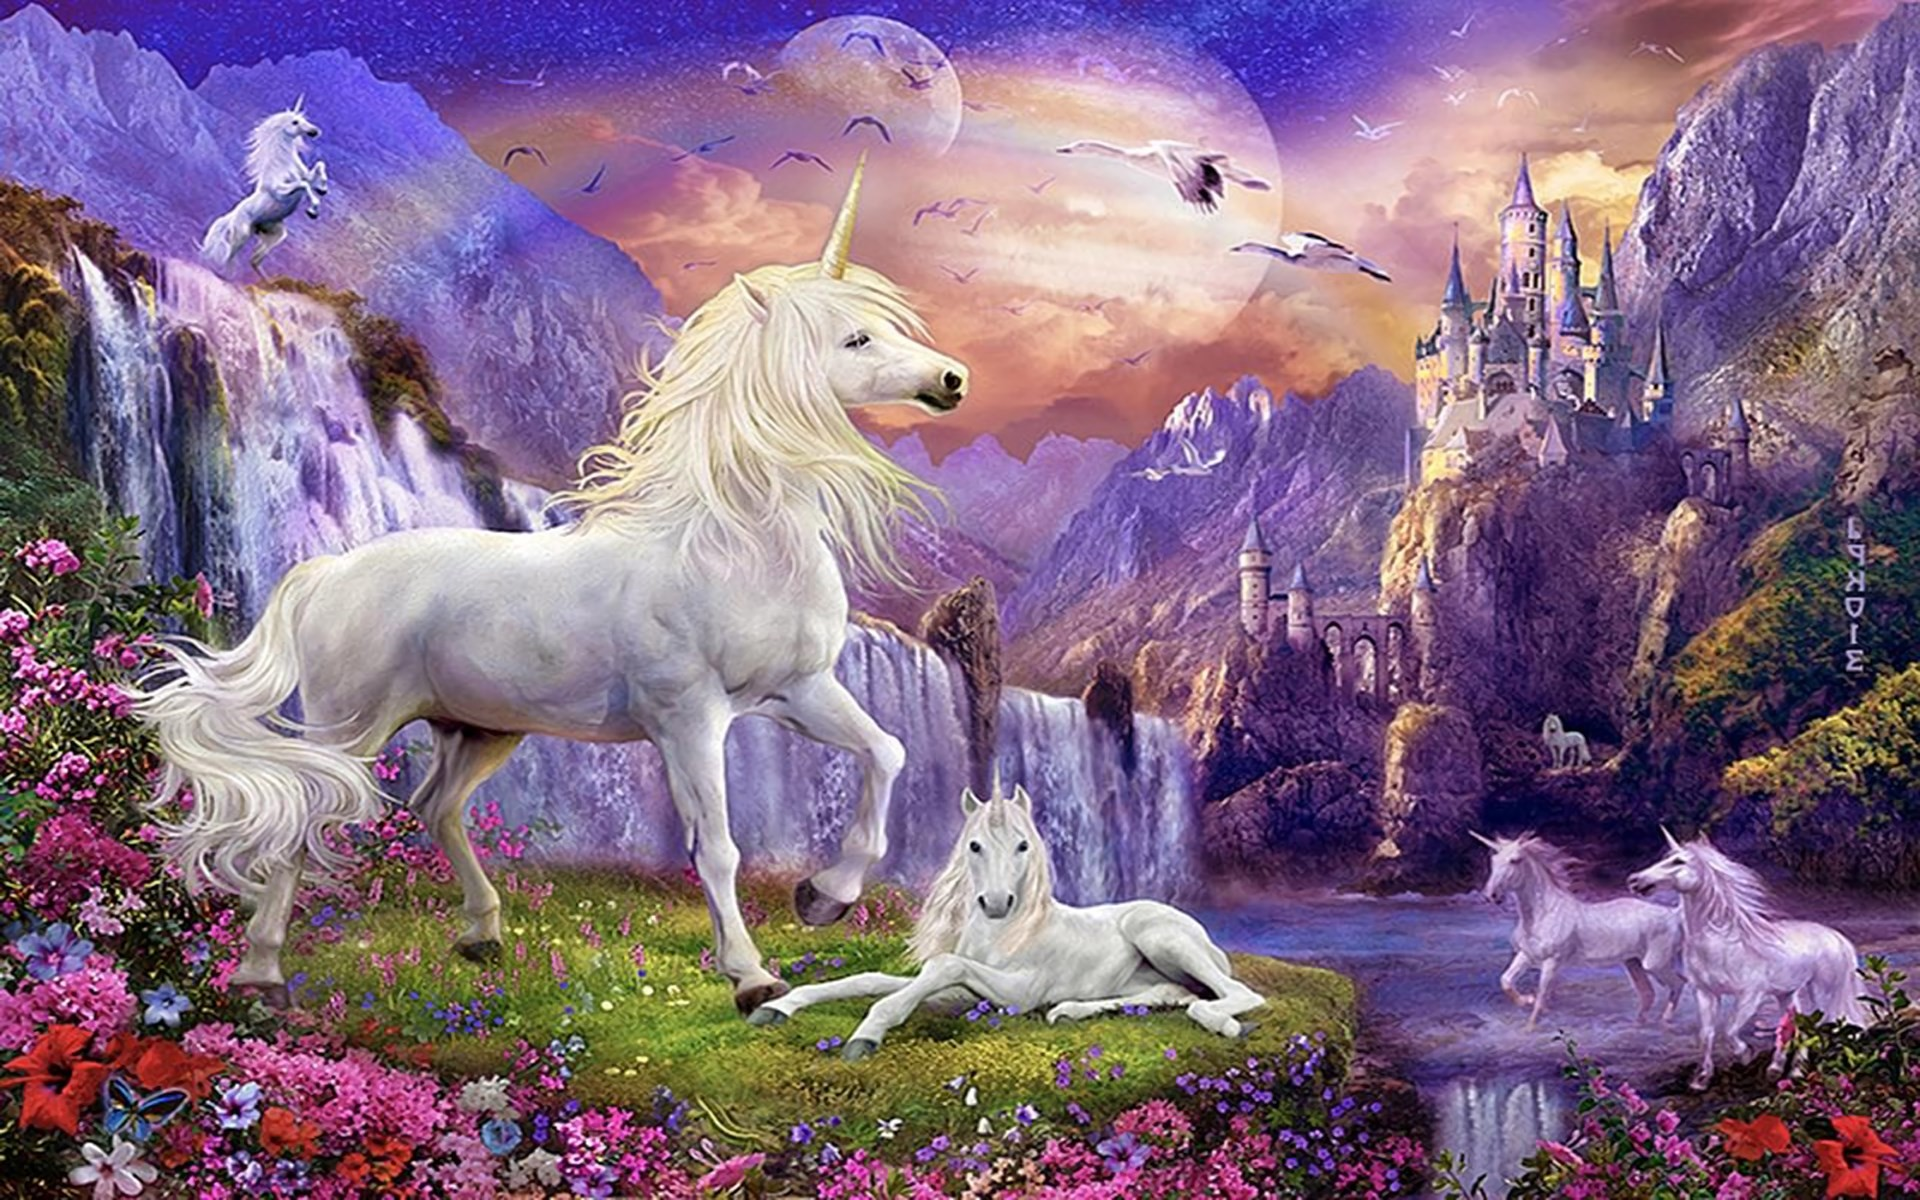 Unicorn backgrounds for desktop 69 images 2835x1984 full hd bestblackwild life background unicorn amazing magic high definiton tail griva blue 4k2835x1984 wallpaper hd voltagebd Images